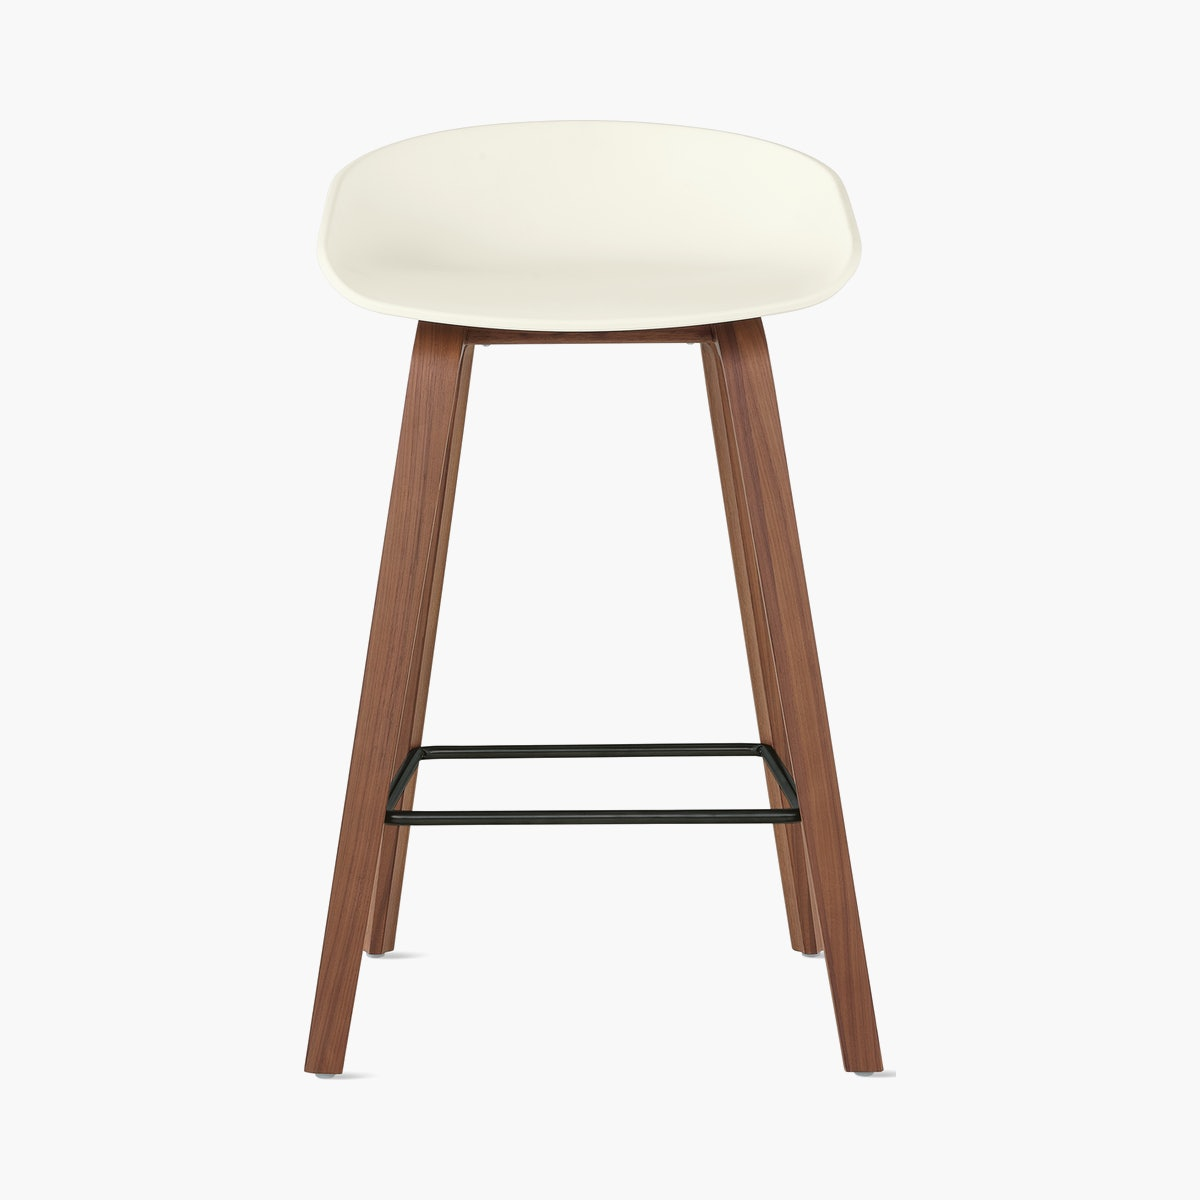 About A Stool 32